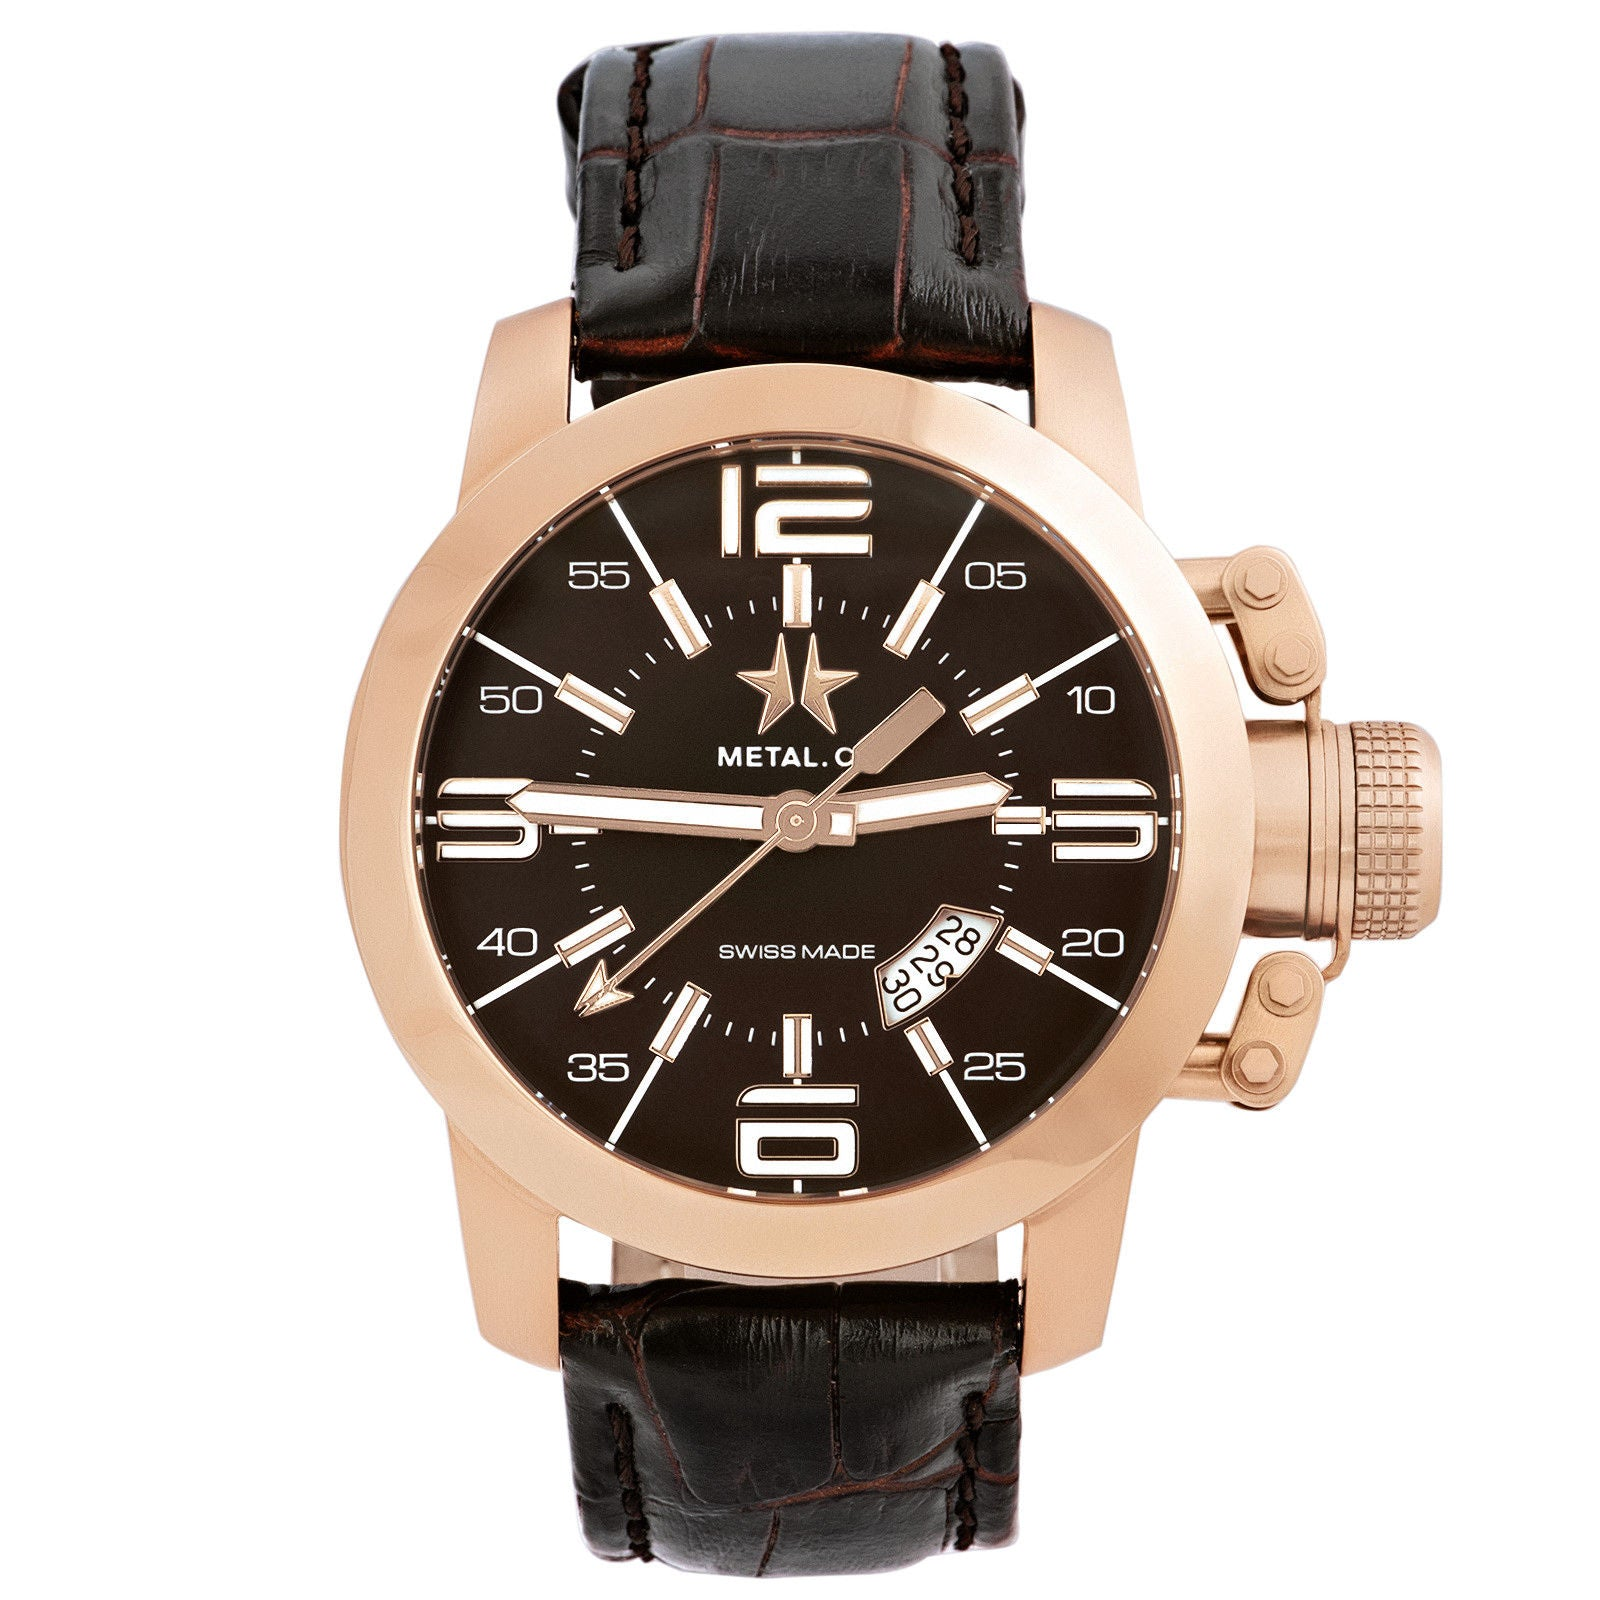 Chronometrie Initial Mens 44mm Swiss Made Rose Gold Watch 1340.44-Luxury Watches | Mens And Ladies Luxury Watches | Upscale Time